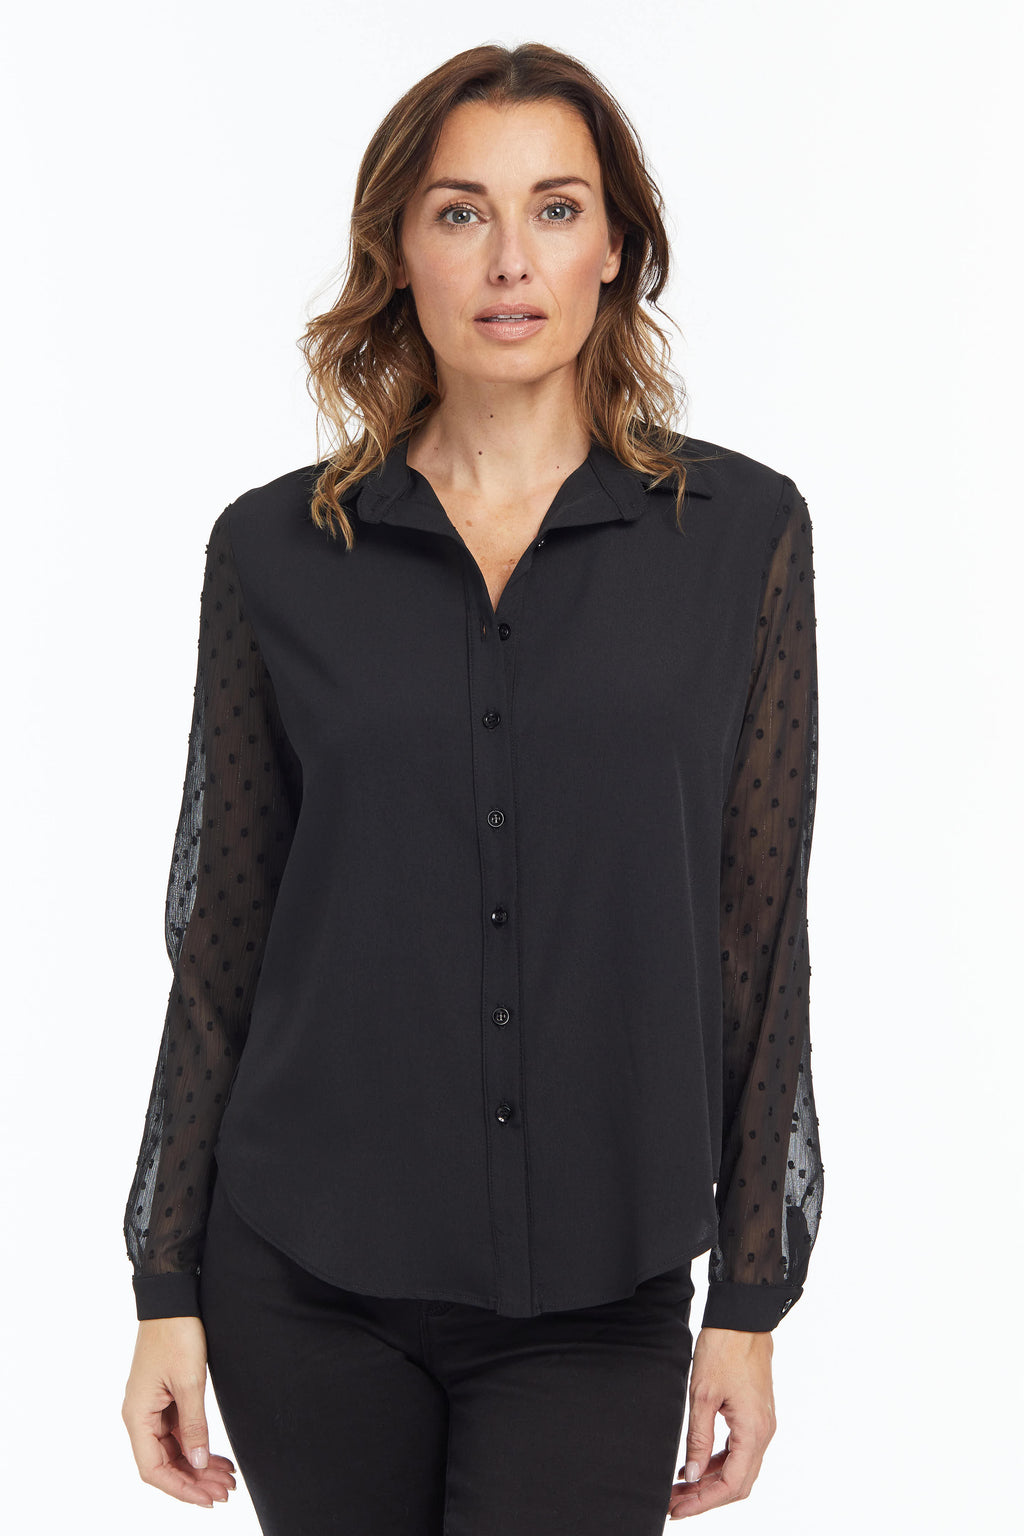 FLORENCE SG Sheer Sleeve Blouse